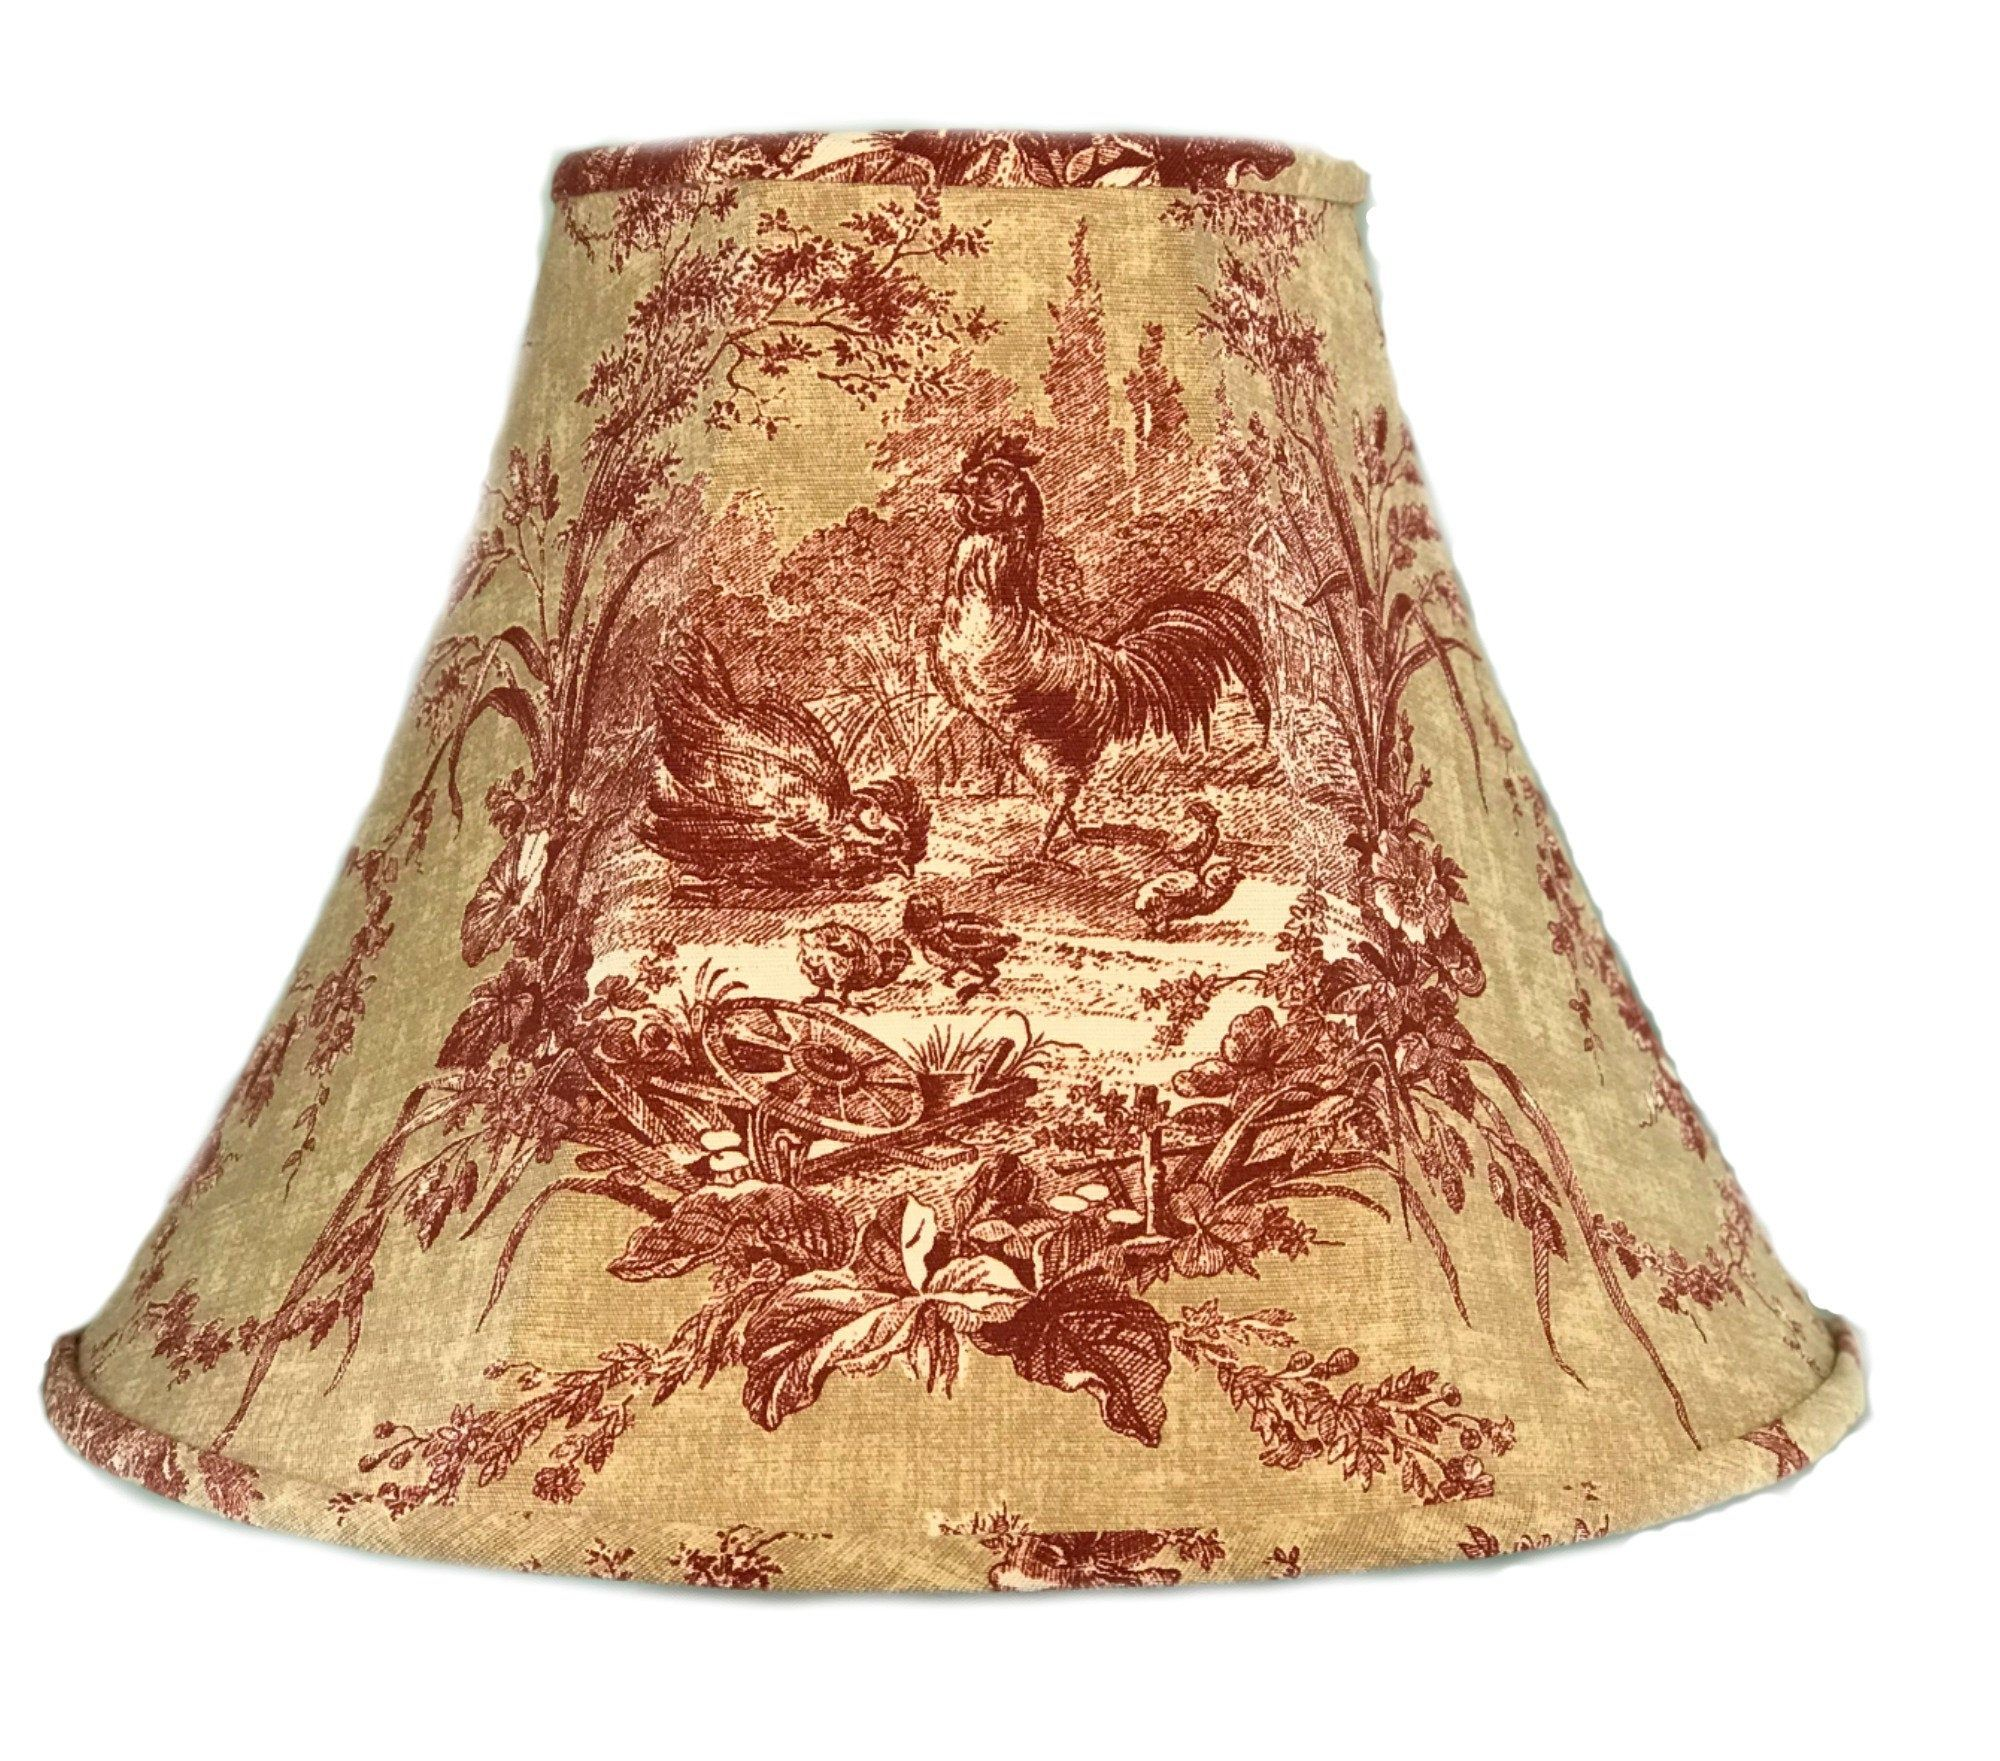 Toile Lamp Shade Red Toile Lamp French Country Lamp Shade French Toile Lamp Shade Shabby Chic Lamp Sh Shabby Chic Lamp Shades Toile Lamp French Lamp Shades